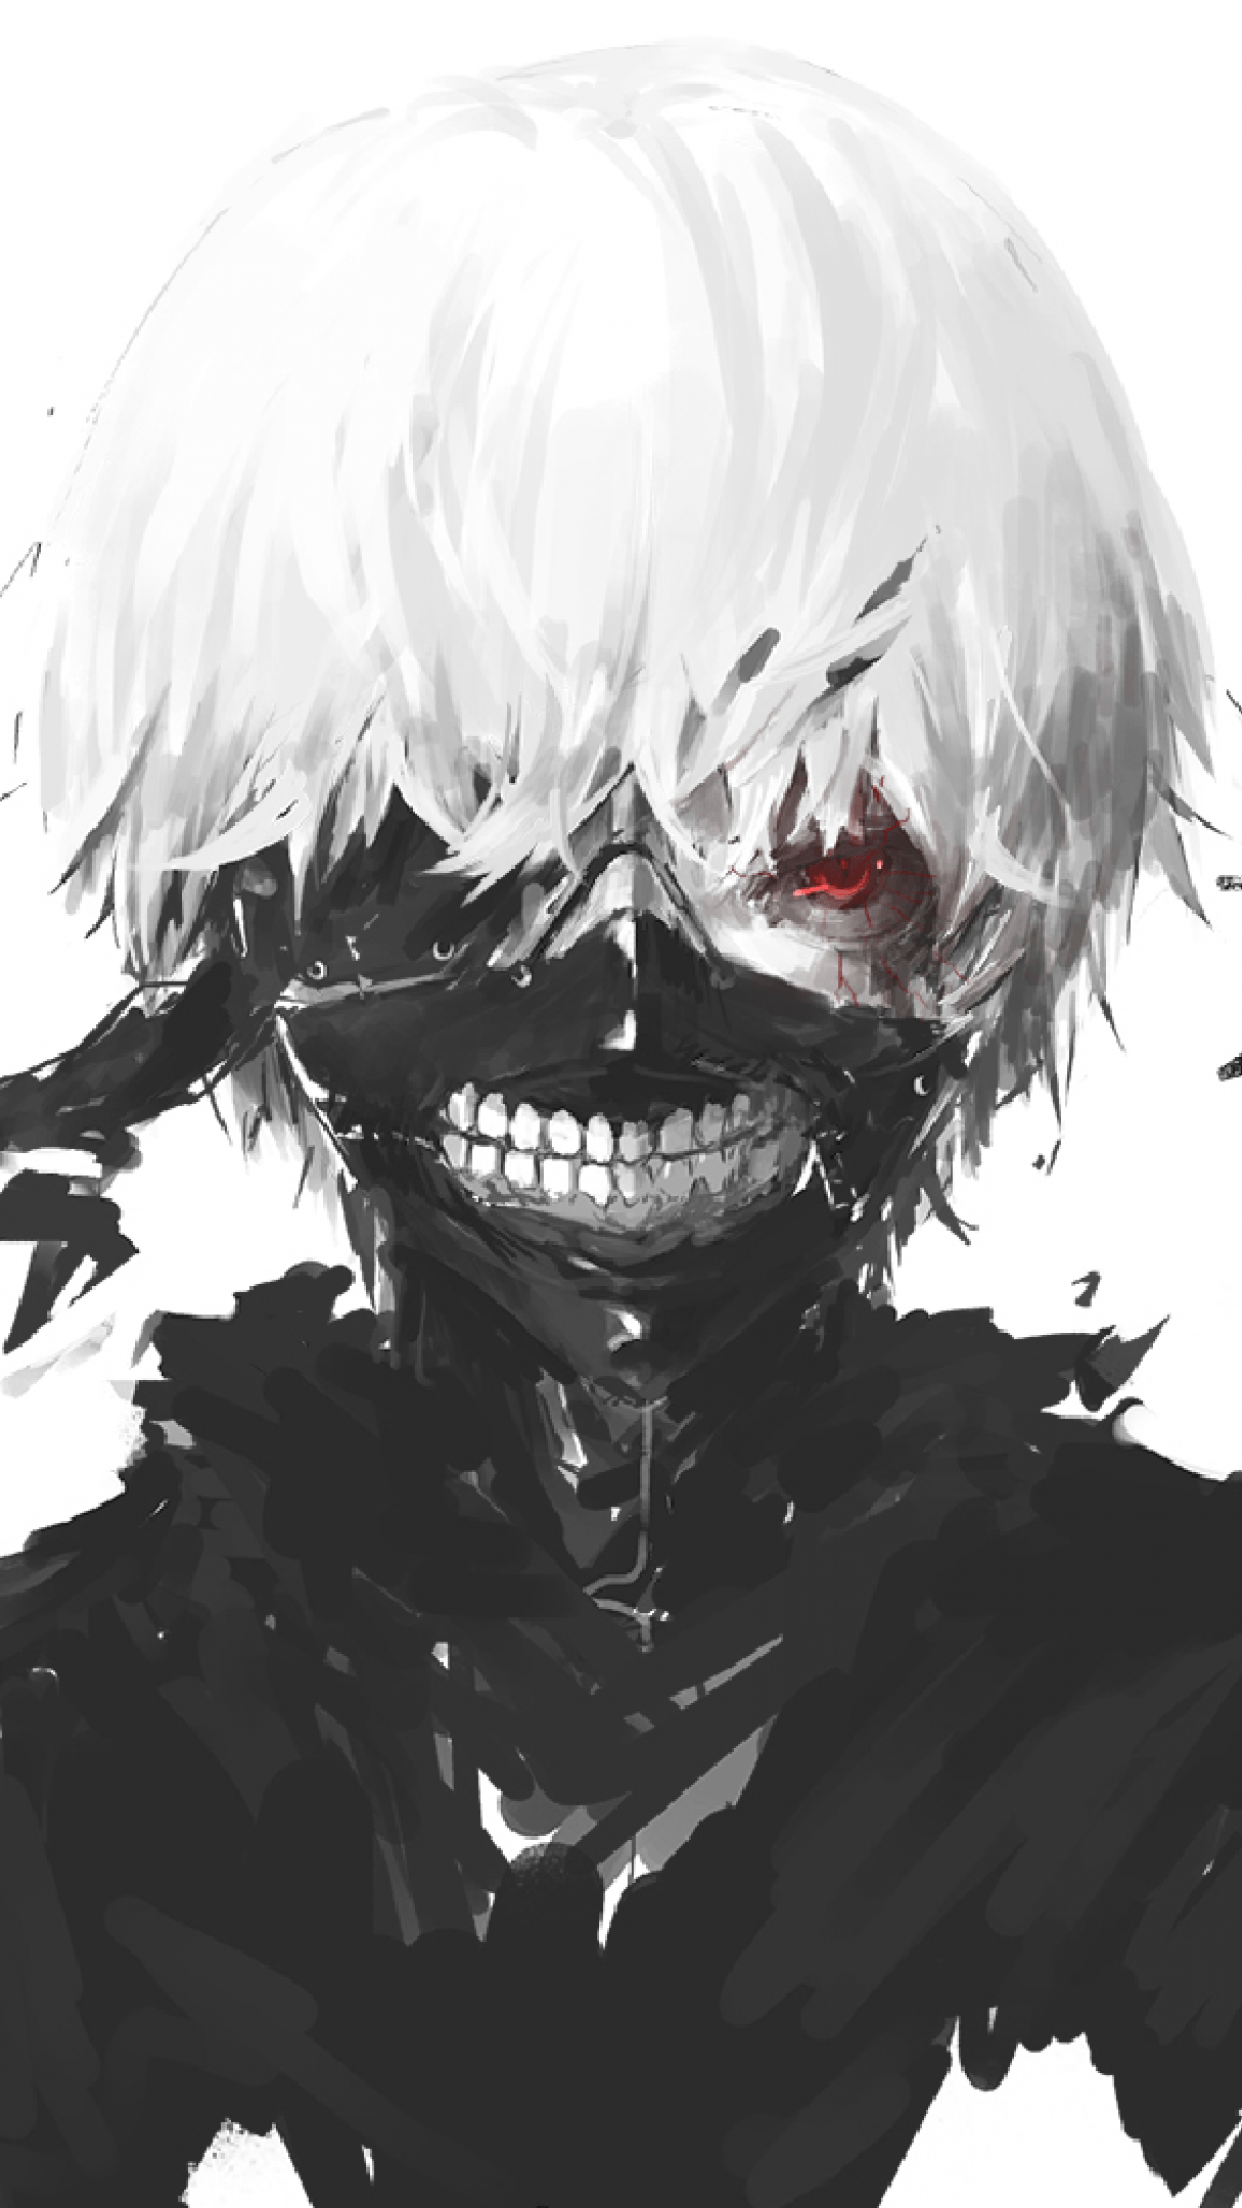 Tokyo ghoul phone wallpapers and background images for all your devices. Anime Tokyo Ghoul Kaneki Wallpaper Iphone - Singebloggg